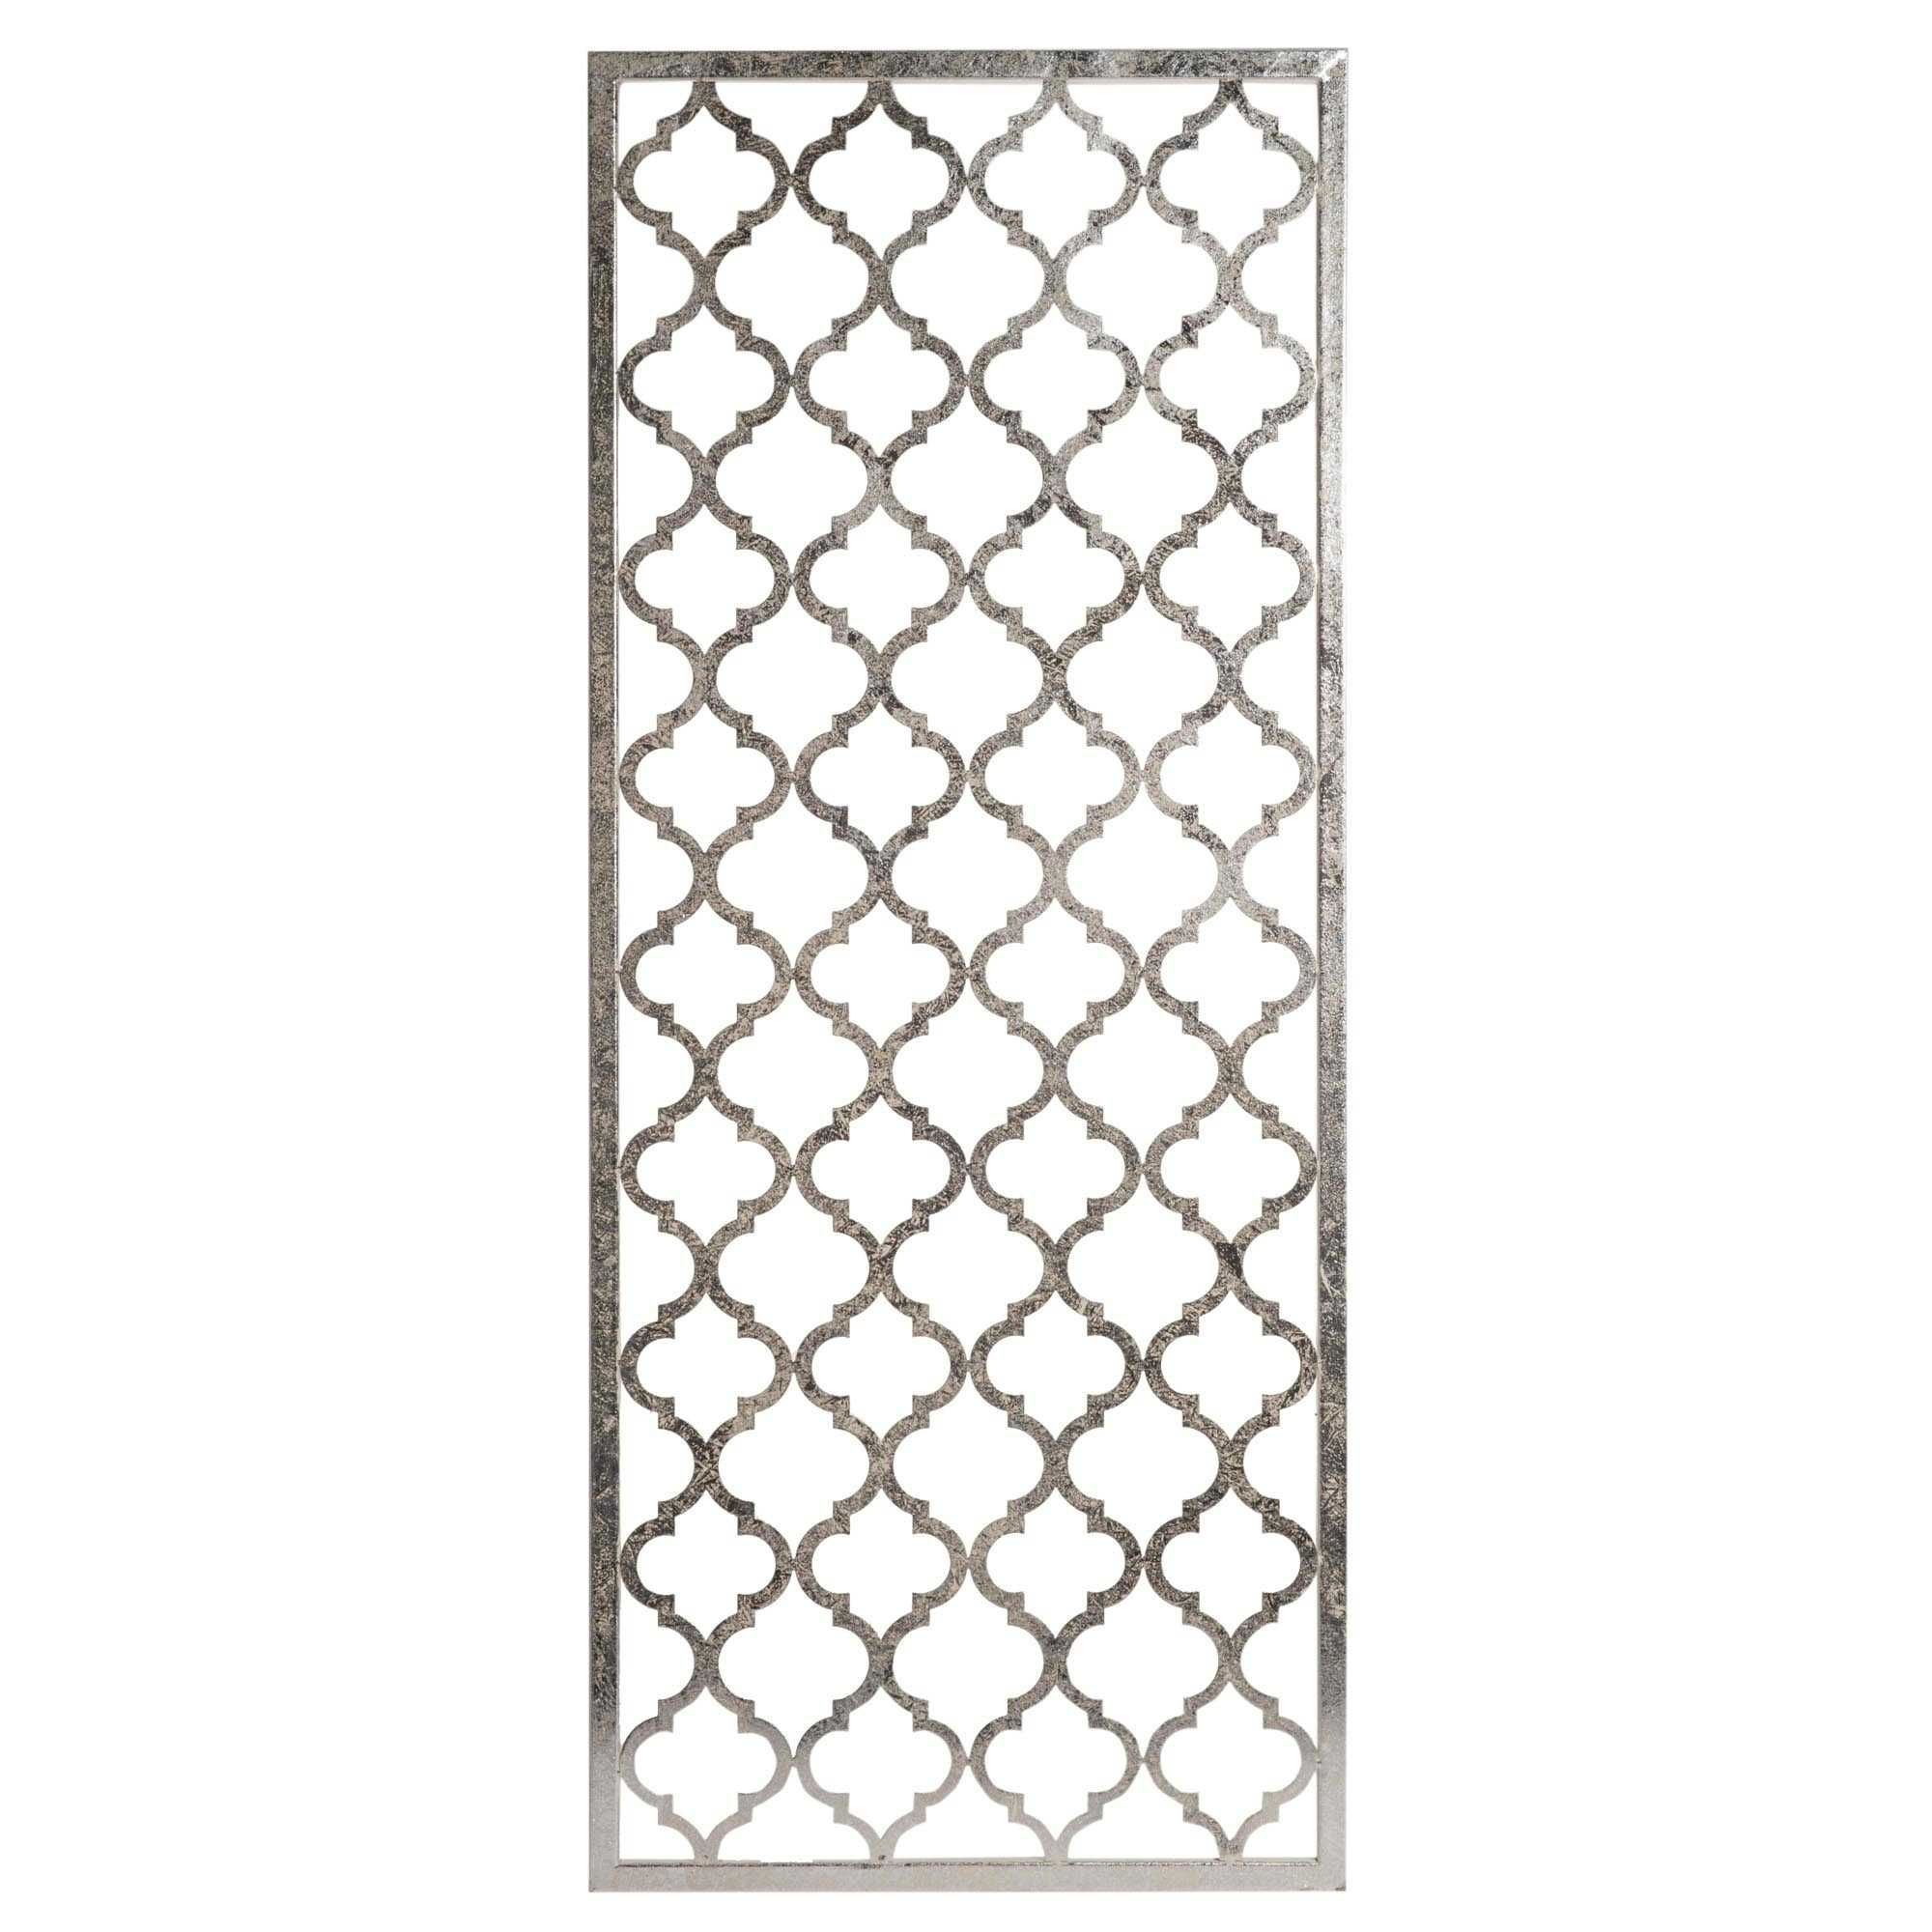 D co murale en m tal argent 44x106cm cala decor for Decoration murale objet